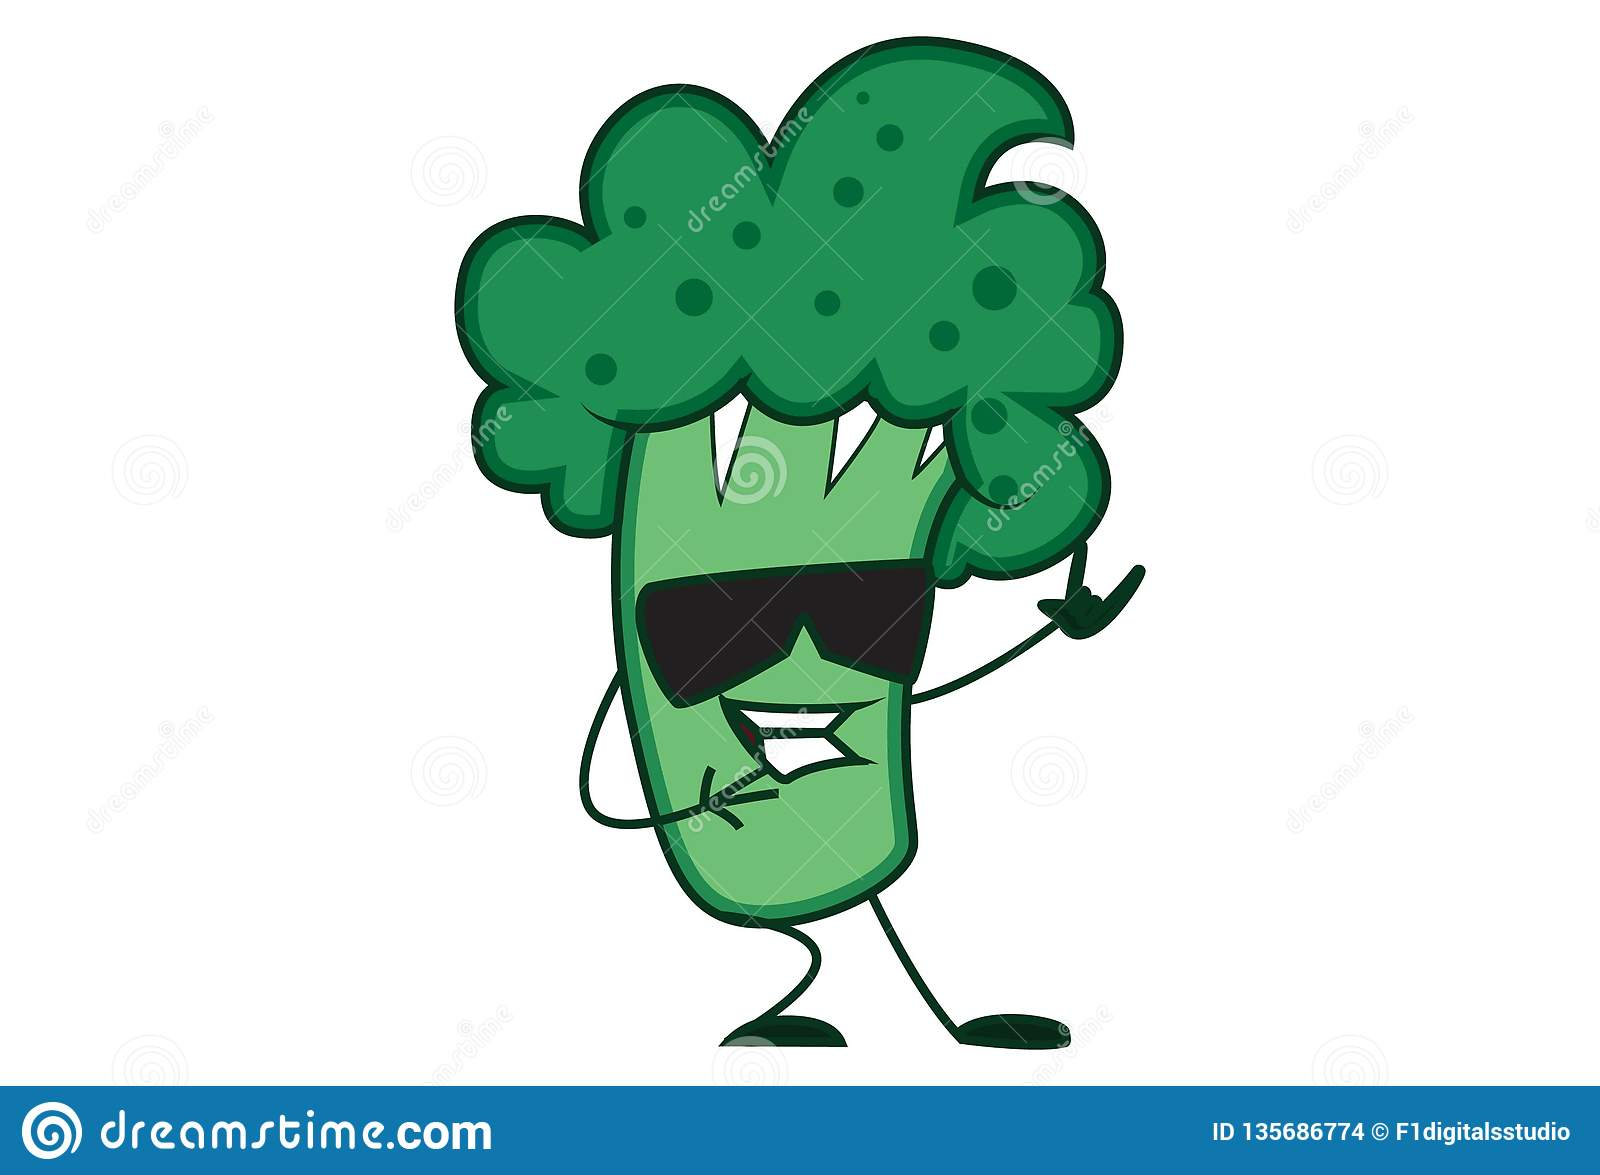 illustration of cute cartoon broccoli stock vector illustration of funny hands 135686774 https www dreamstime com illustration cute cartoon broccoli vector cartoon illustration cute broccoli wearing black glasses isolated white image135686774